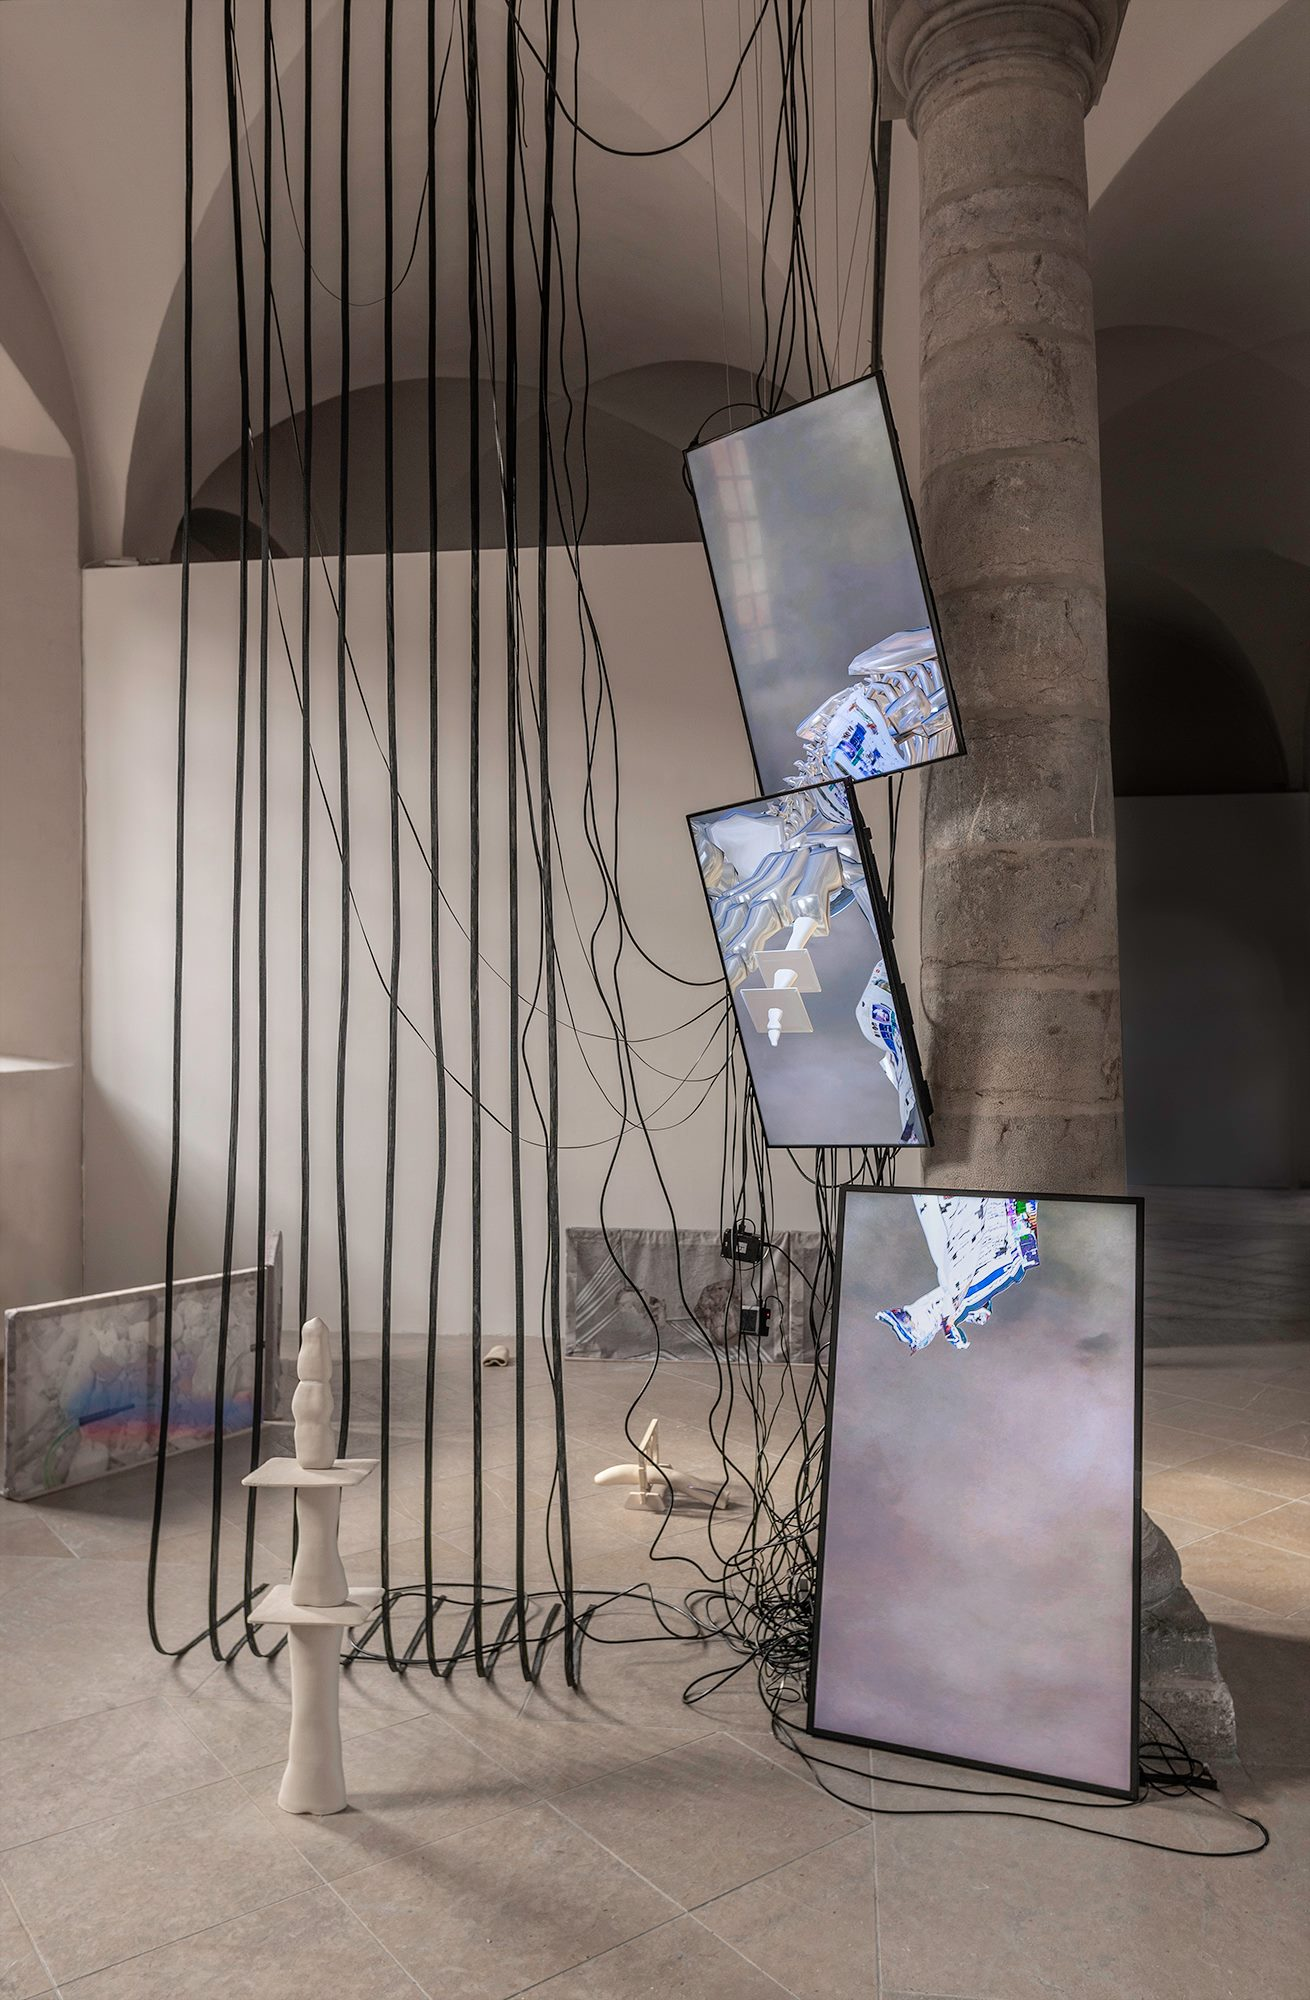 Dominique Sirois & Baron Lanteigne   In Extremis  2019  Installation. Screens, ceramics (sandstone), printed polyester fabrics, cables, ducts and media players